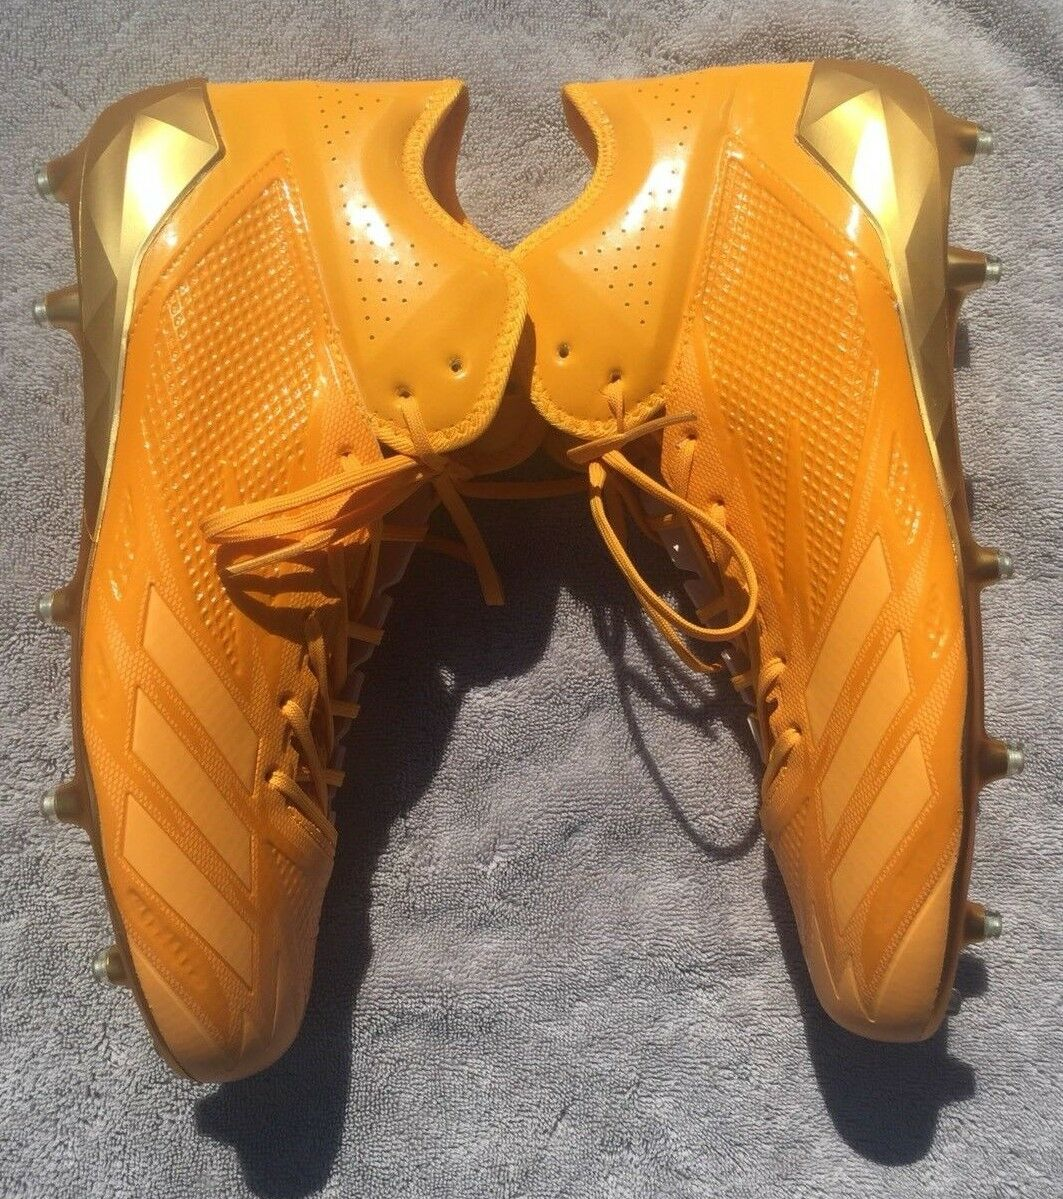 Adidas Adizero Star 6.0 X KE Mens Soccer Cleats Yellow gold (BY3893) Size  12.5